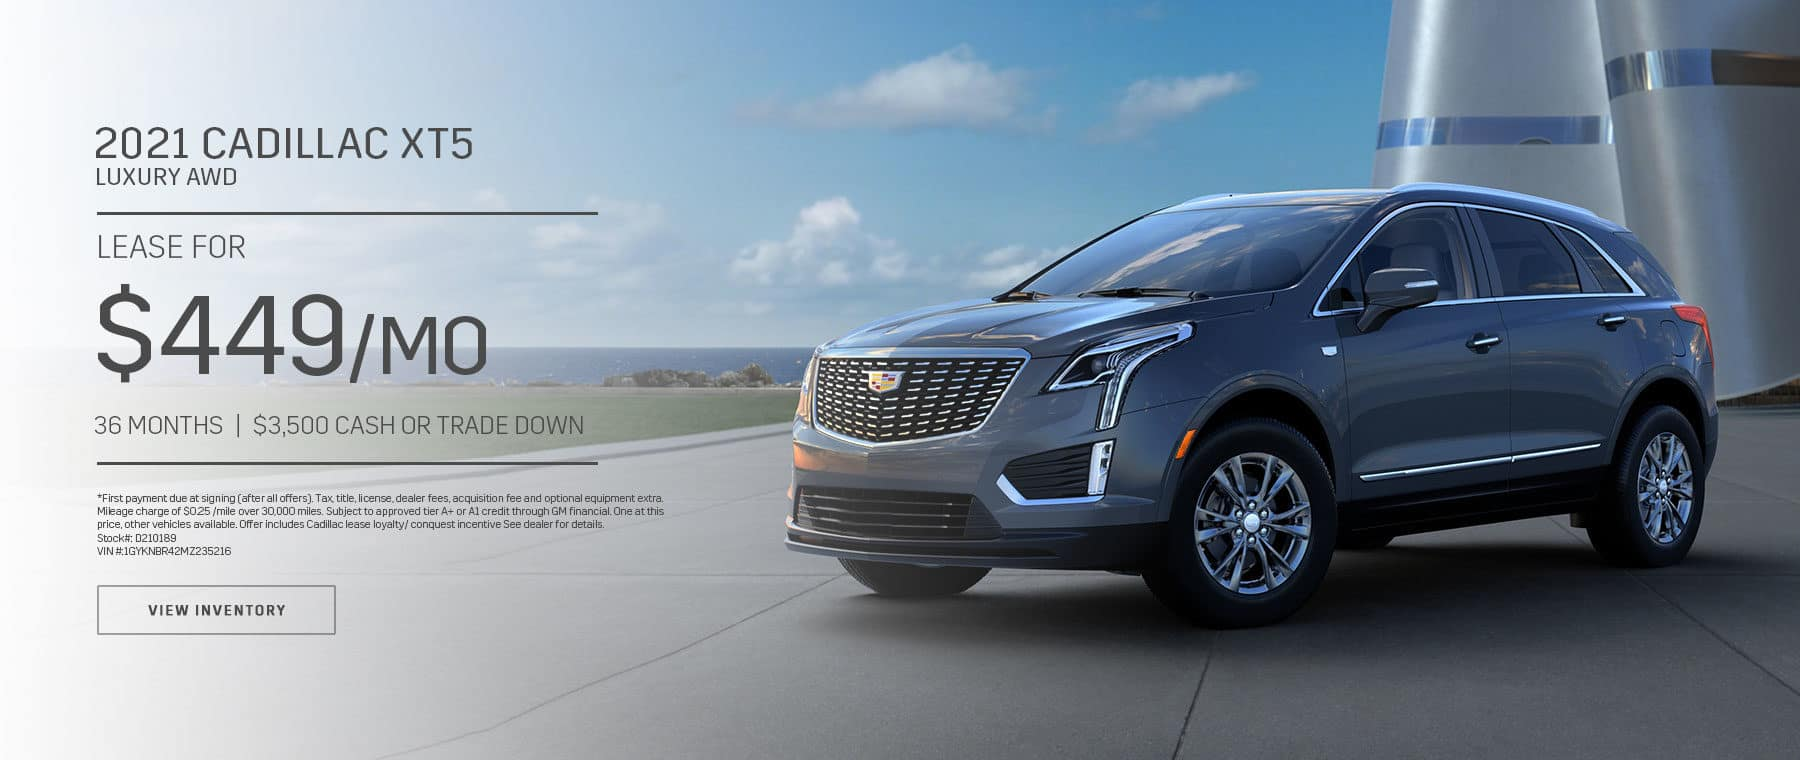 2021 Cadillac XT5 Luxury AWD $449 a month 36 Month lease $3,500 Cash or Trade Down